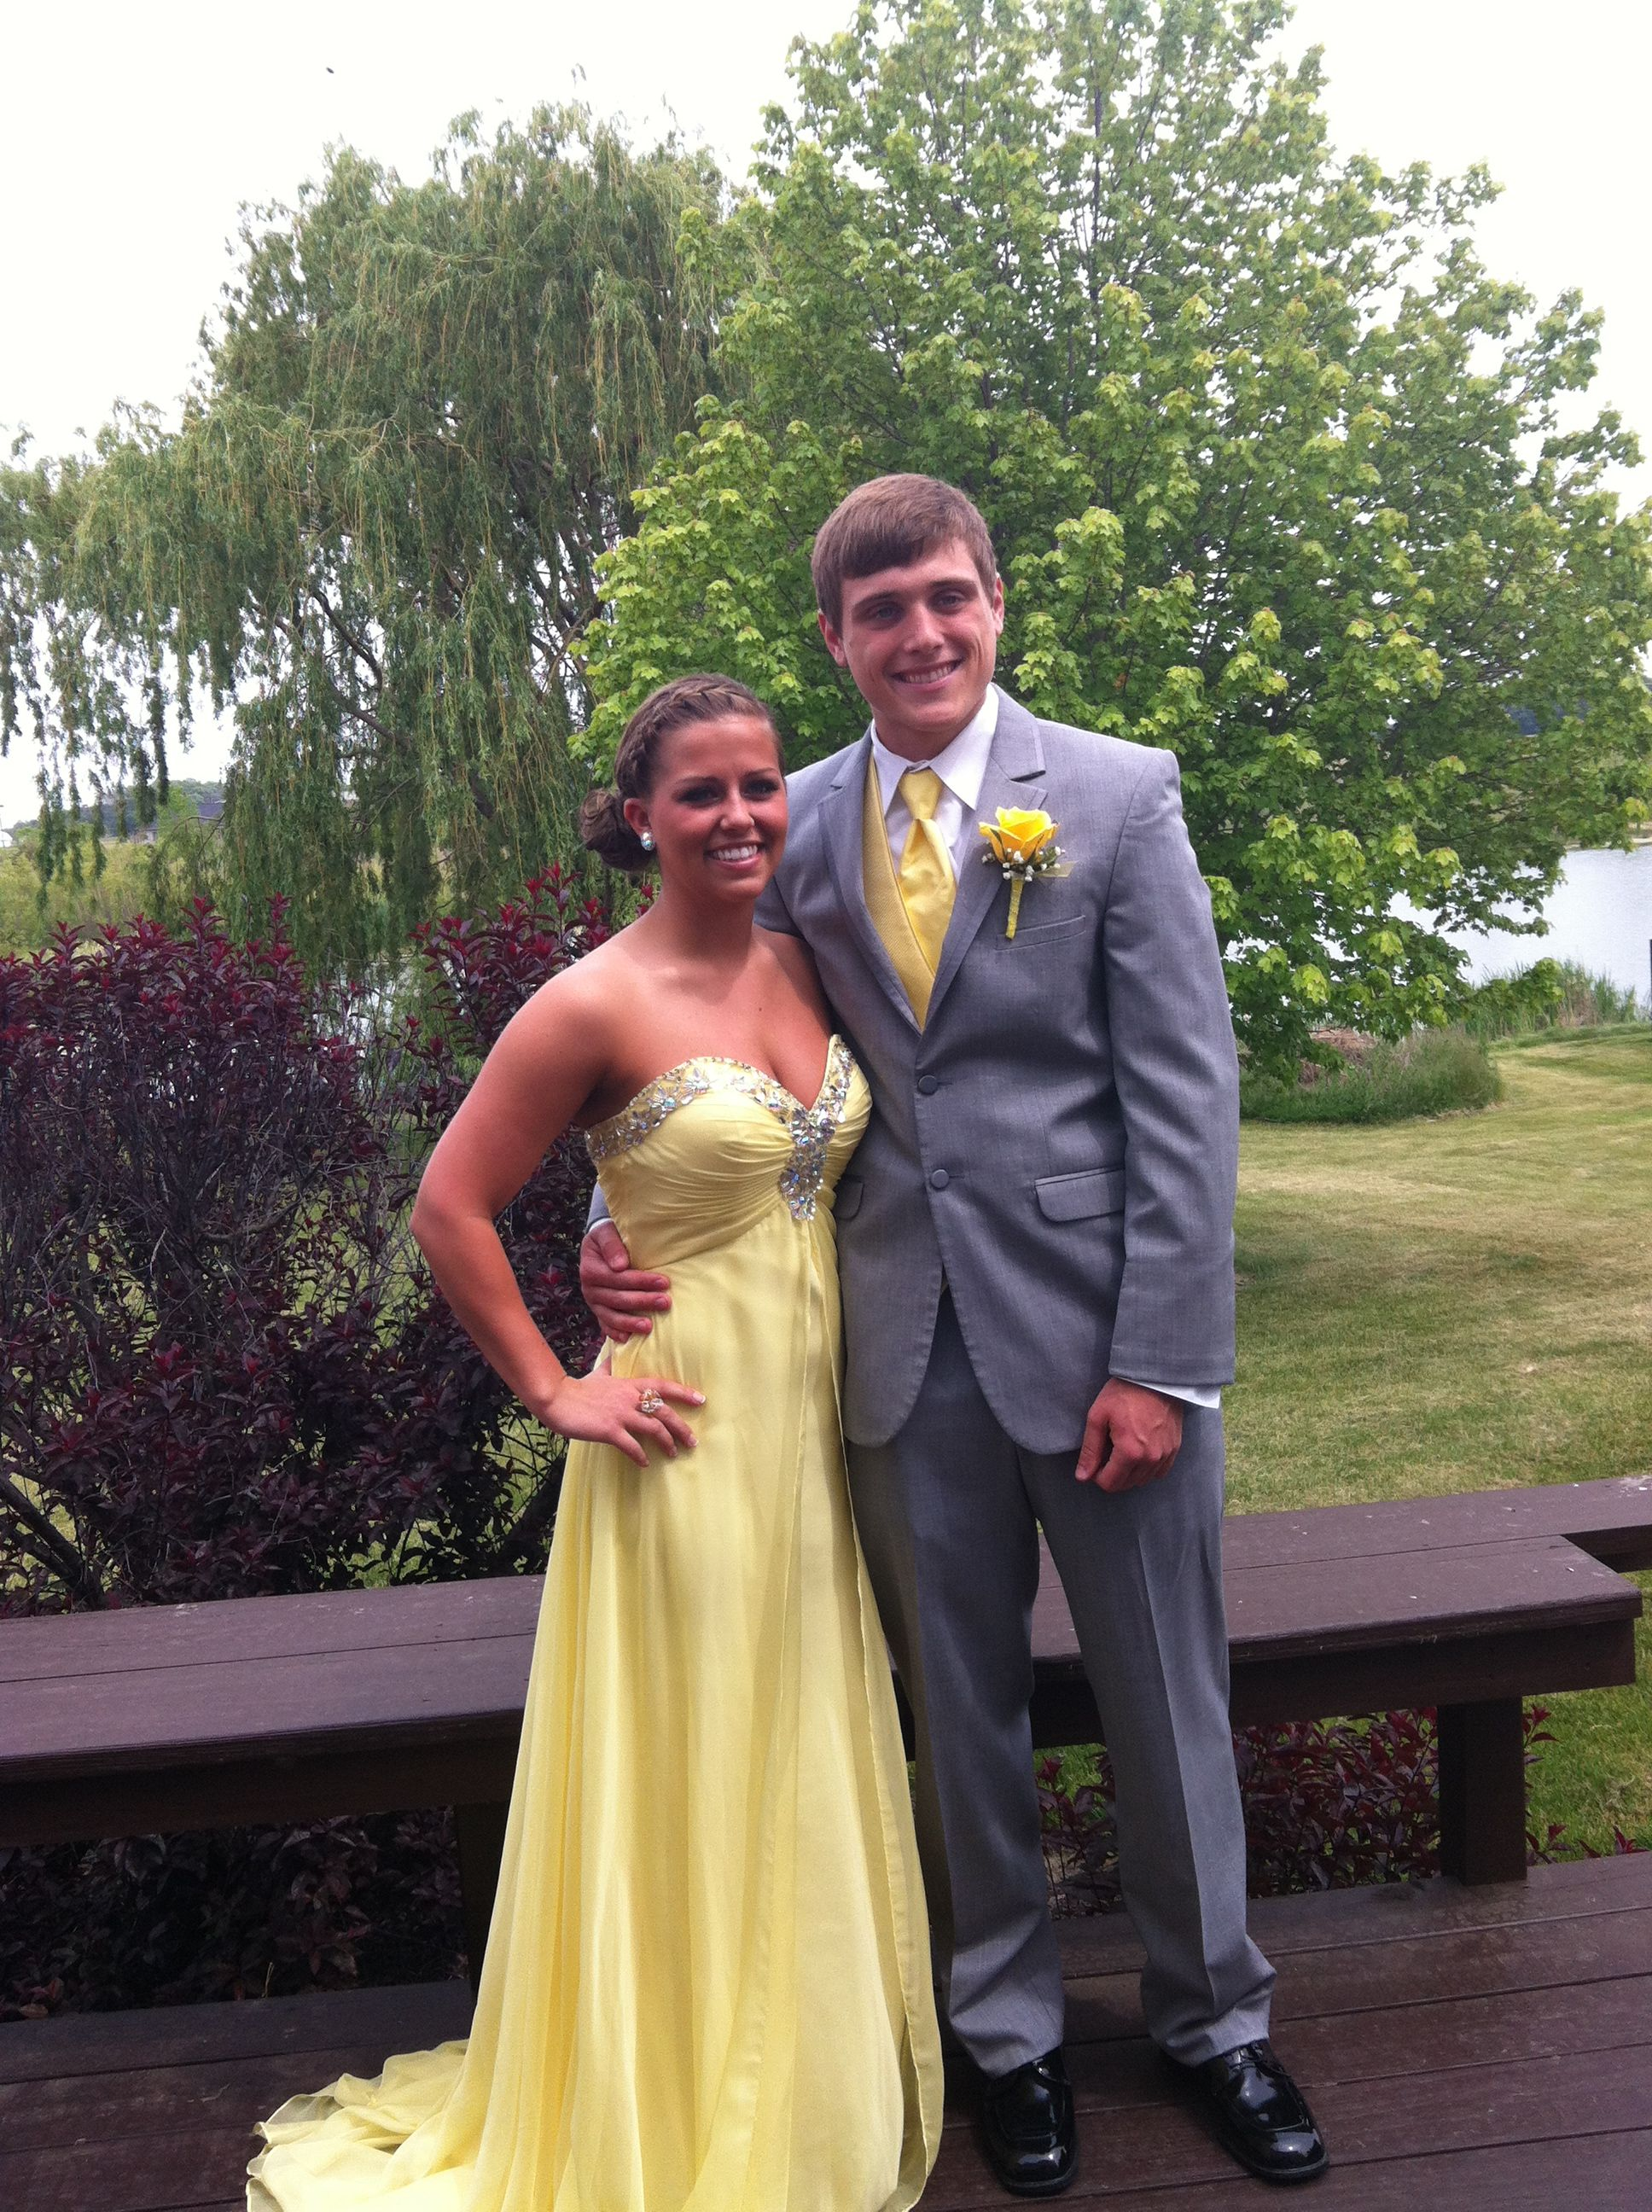 4fdc5a101143 Gray Prom Tuxedo. My date needs to wear gray this year ...